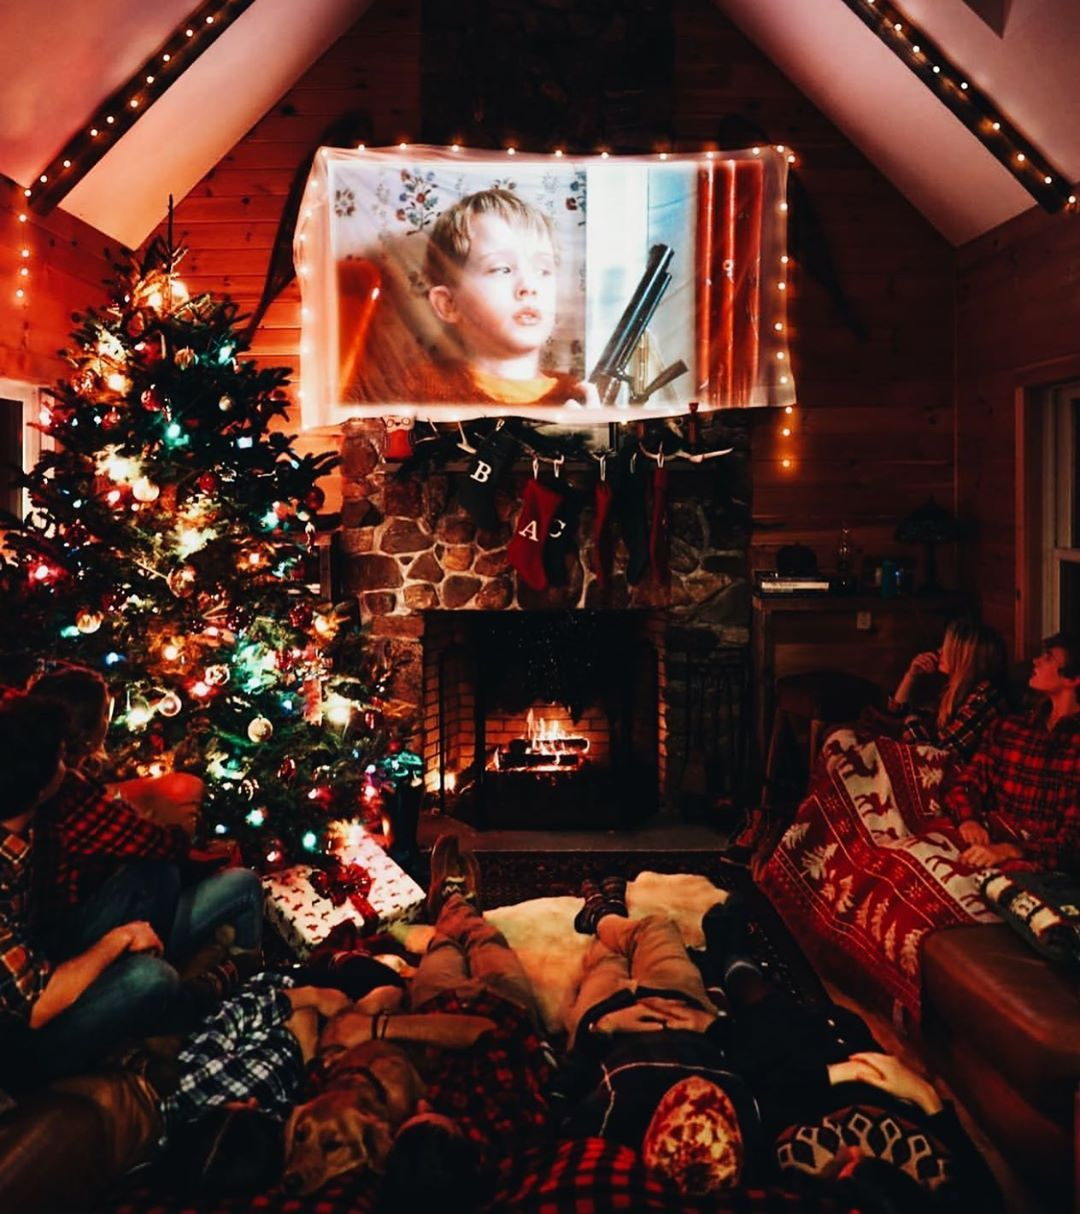 Winter On Instagram Home Alone Comment The Title Of This Movie In Your Native Lan Christmas Decorations Bedroom Christmas Wallpaper Christmas Aesthetic